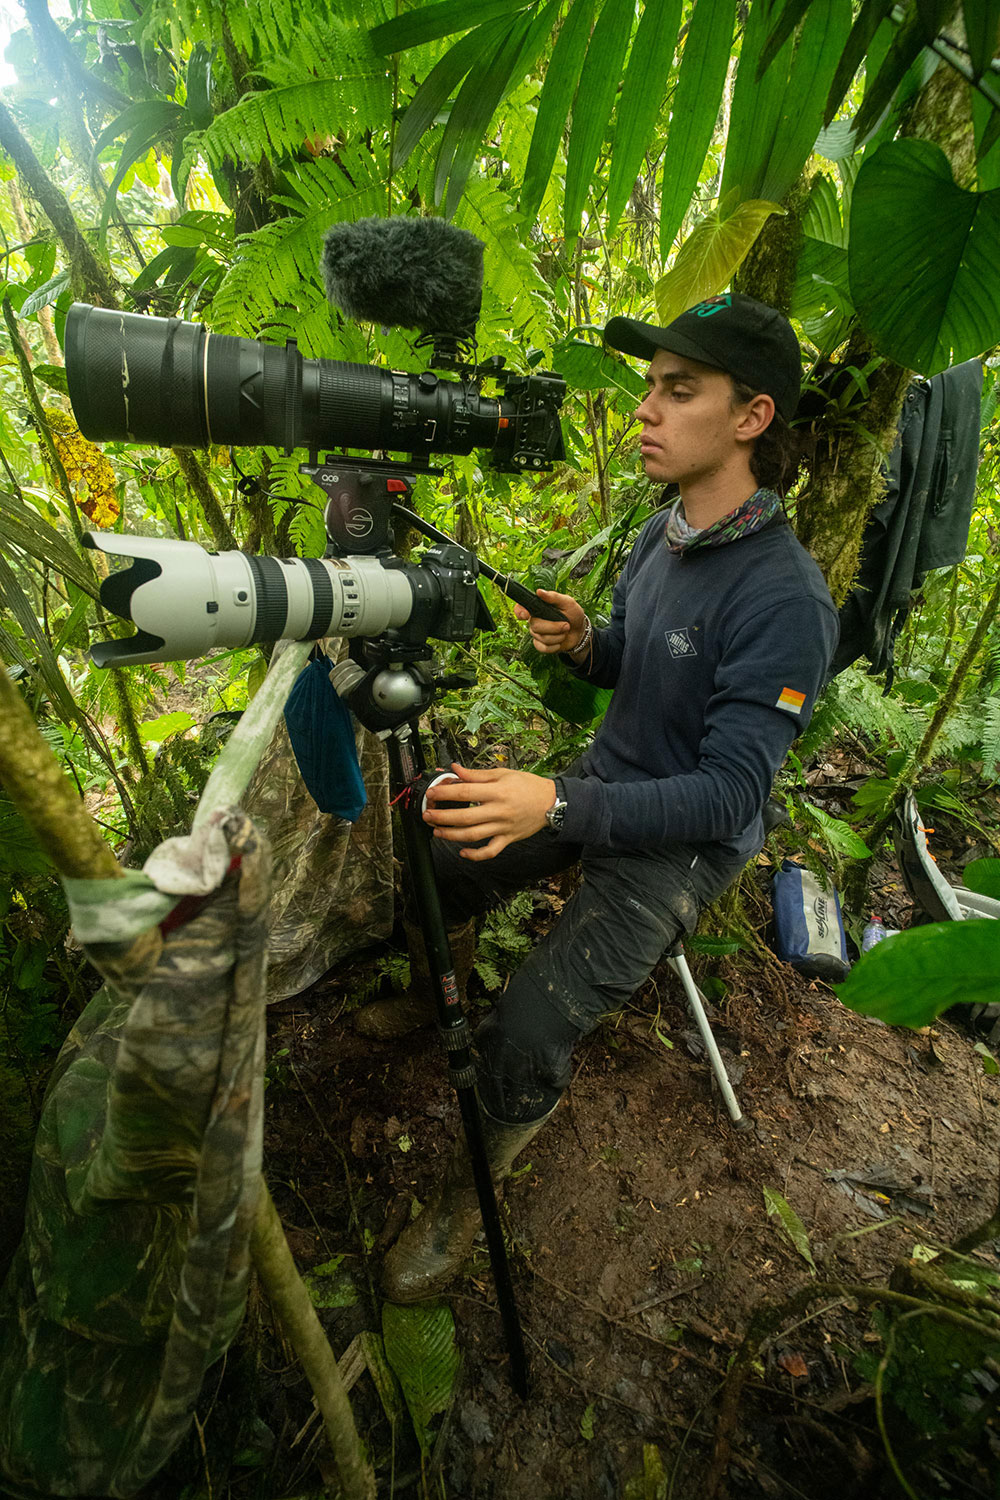 A photographer setting up his cameras in the forest